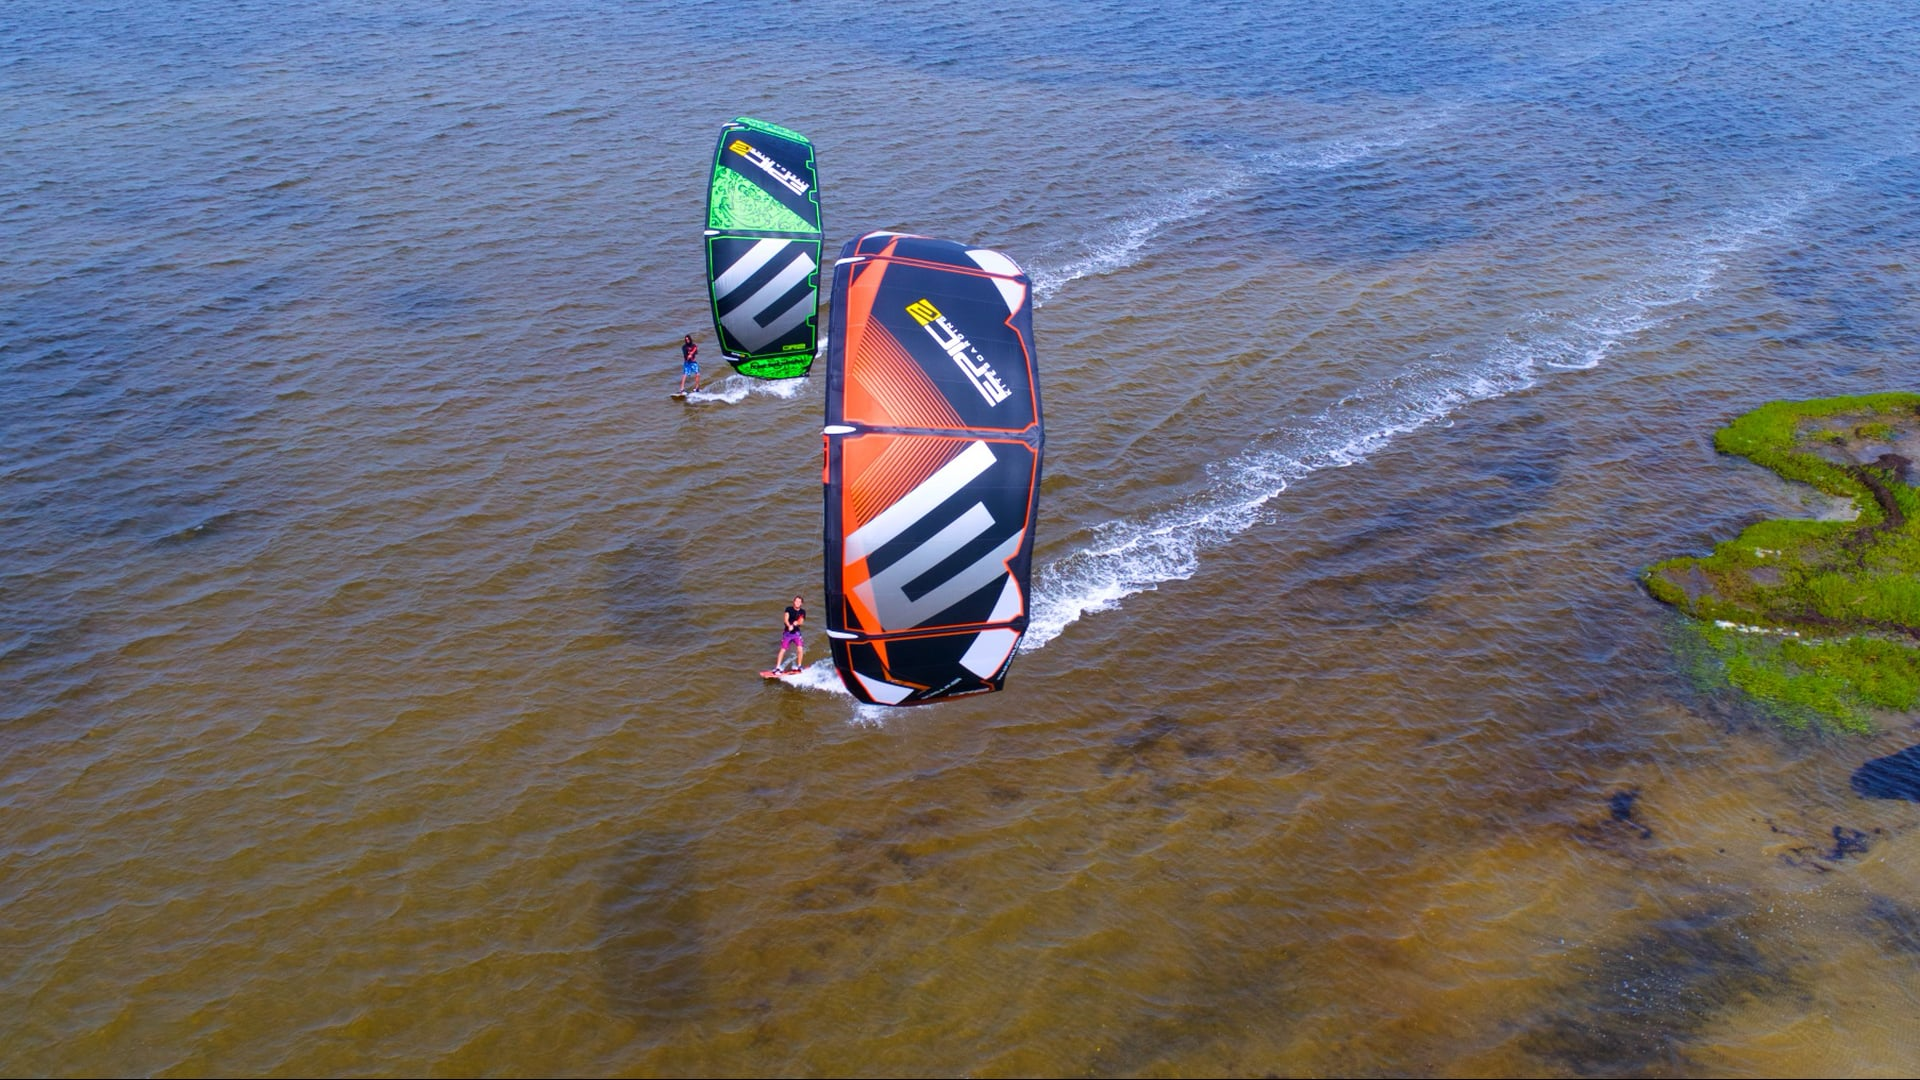 How to exchange 2 kites in the water - with Epic Kites Kiteboarding